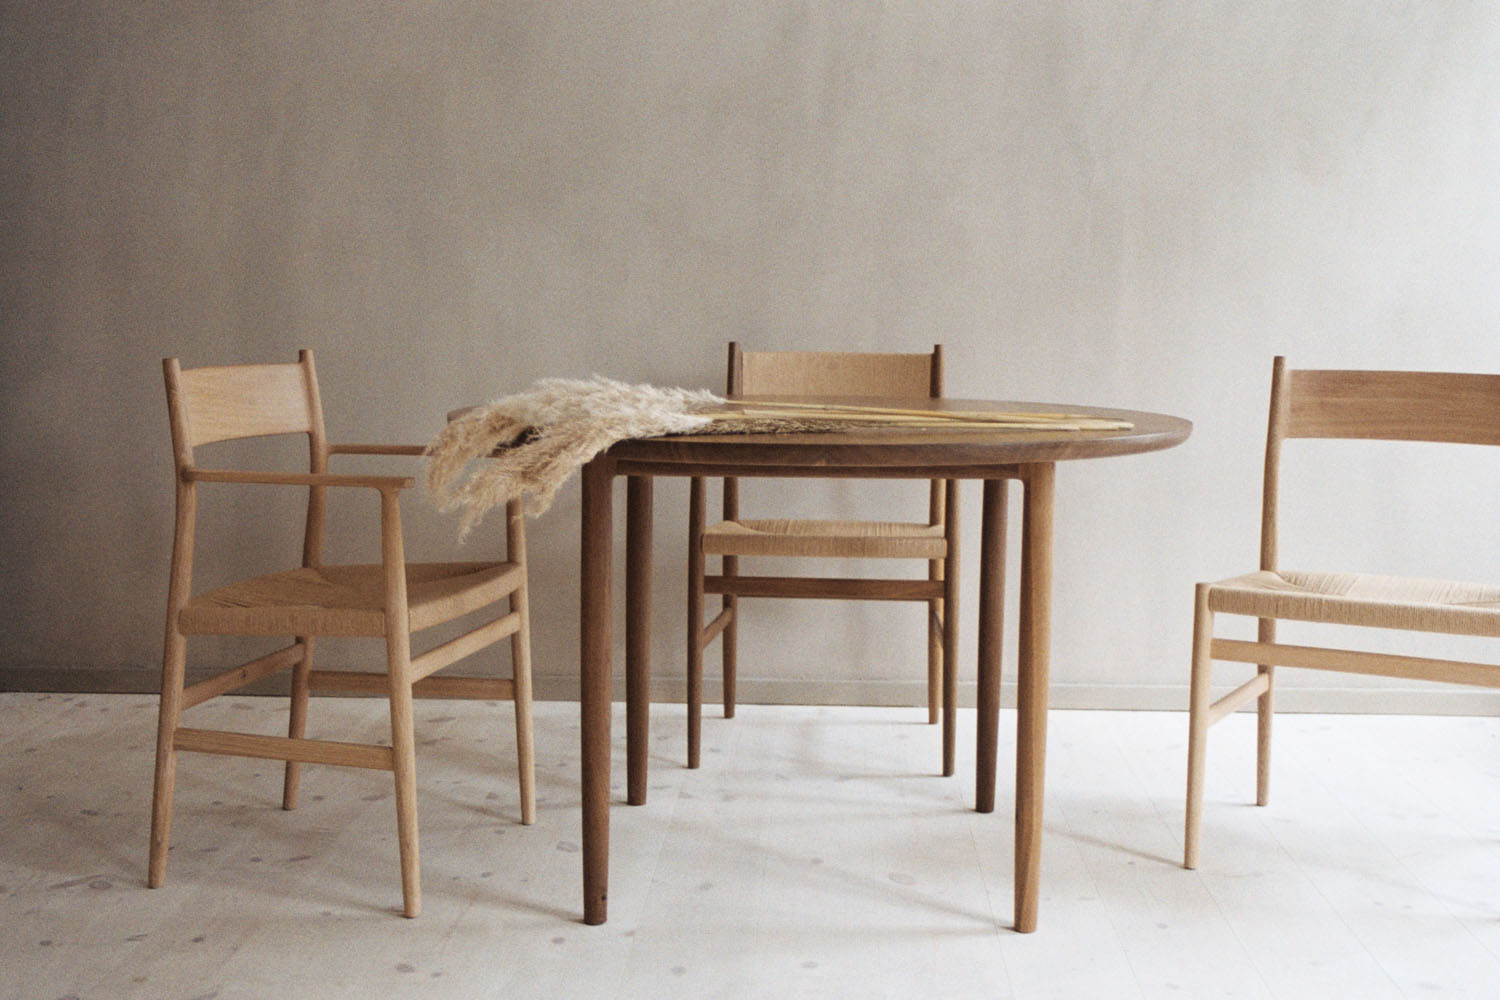 FURNITURE - Our selection of furniture embodies our love to the might and elegance of natural wood. Every piece is made to last. Combining different workhouses in one catalogue we aim to offer the most elegant and natural solution for each function.